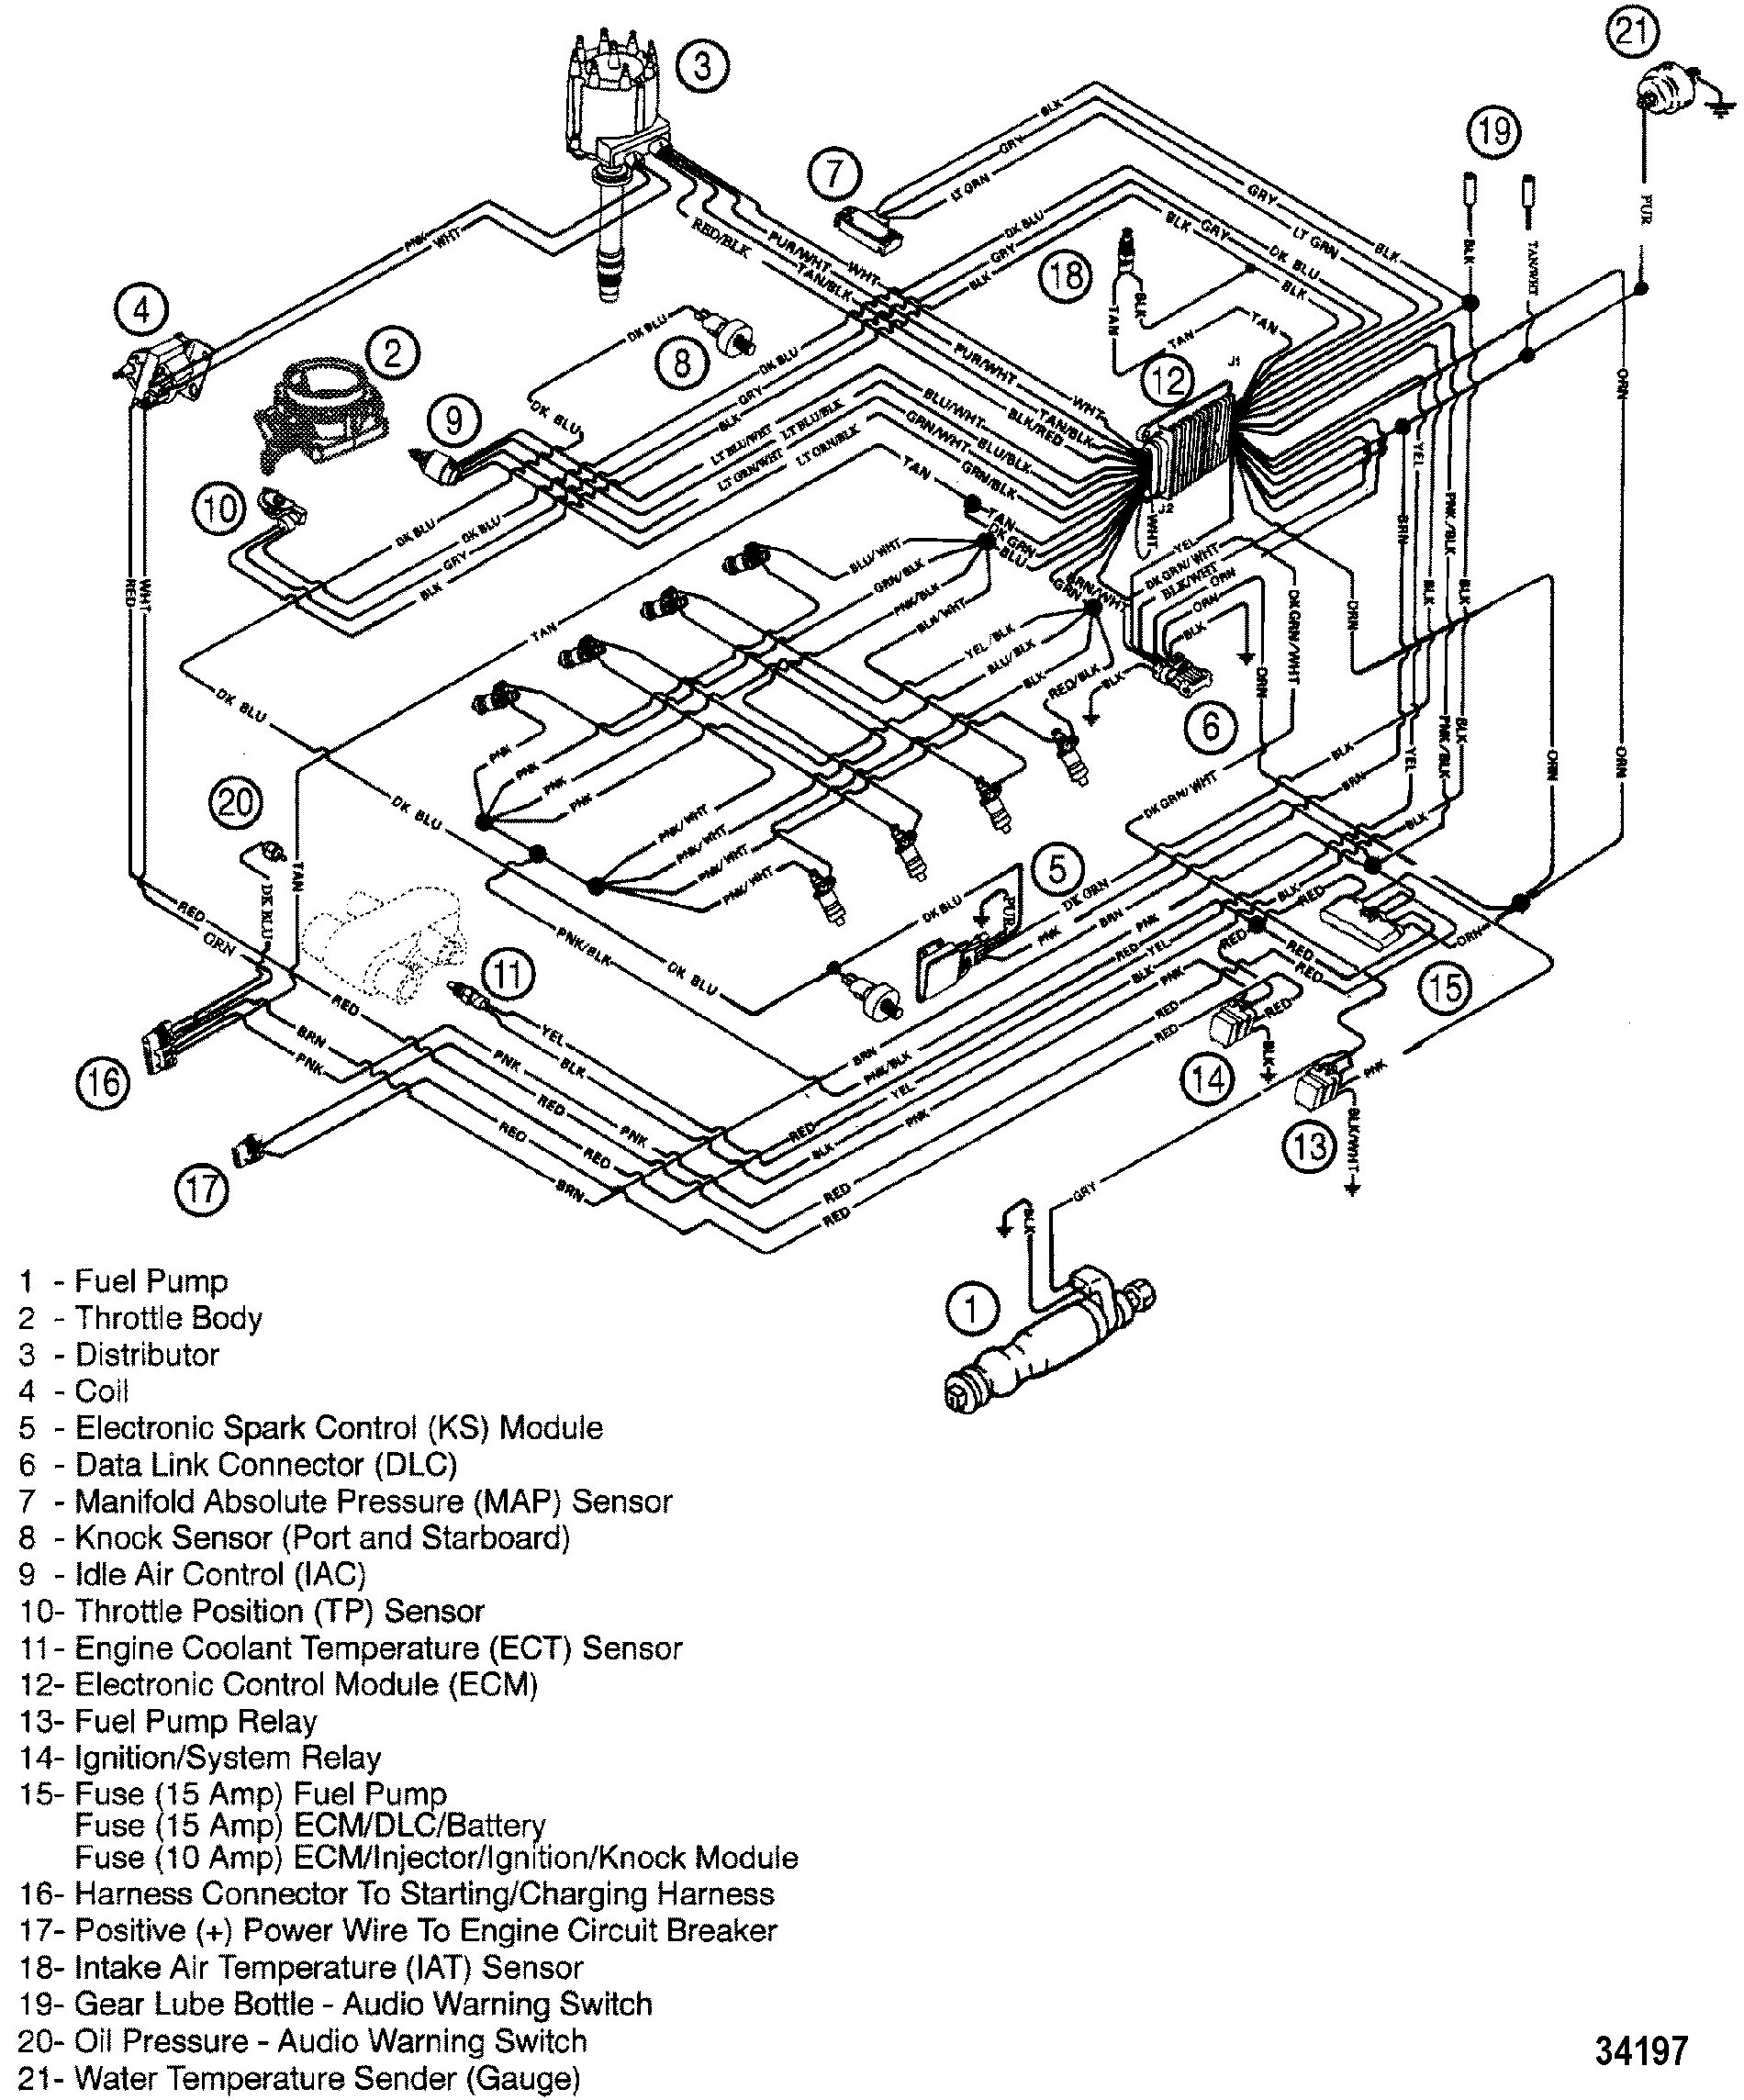 hight resolution of  jet boat wiring diagram 21 cp performance wiring harness efi 7 4l mpi bravo gen 6 gm